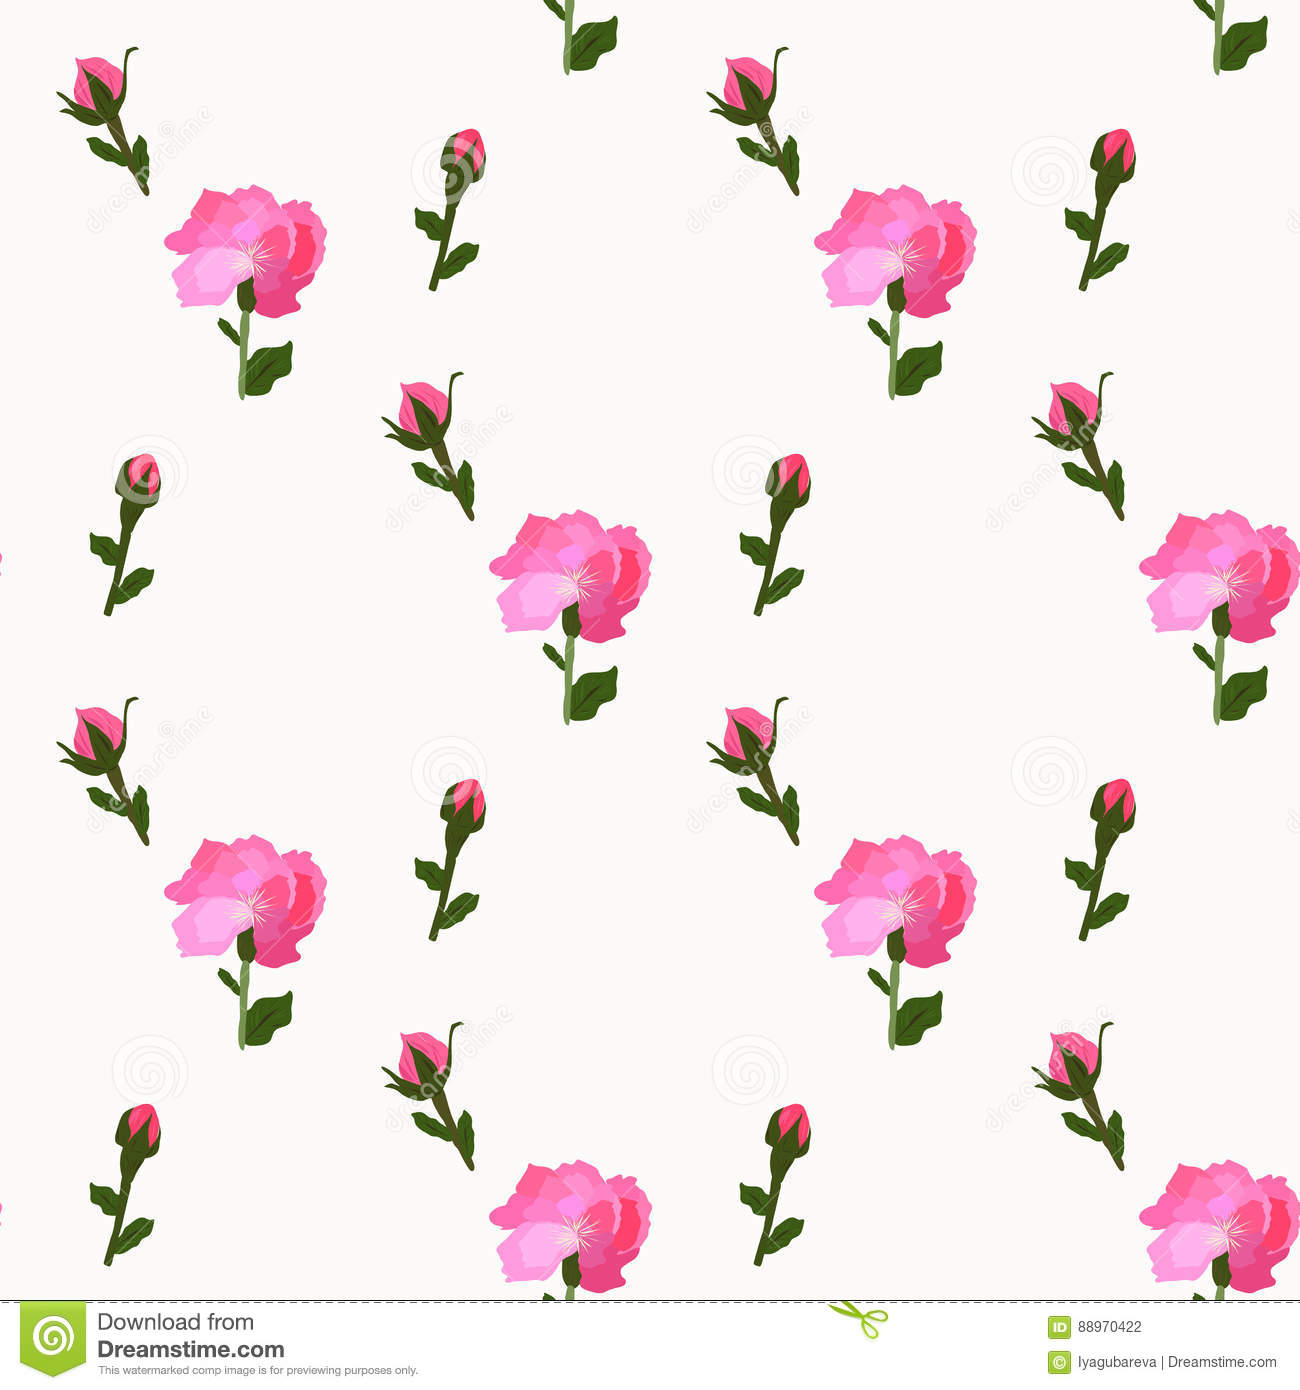 Flower Peony Pink Blooms On Seamless White Wallpaper Stock